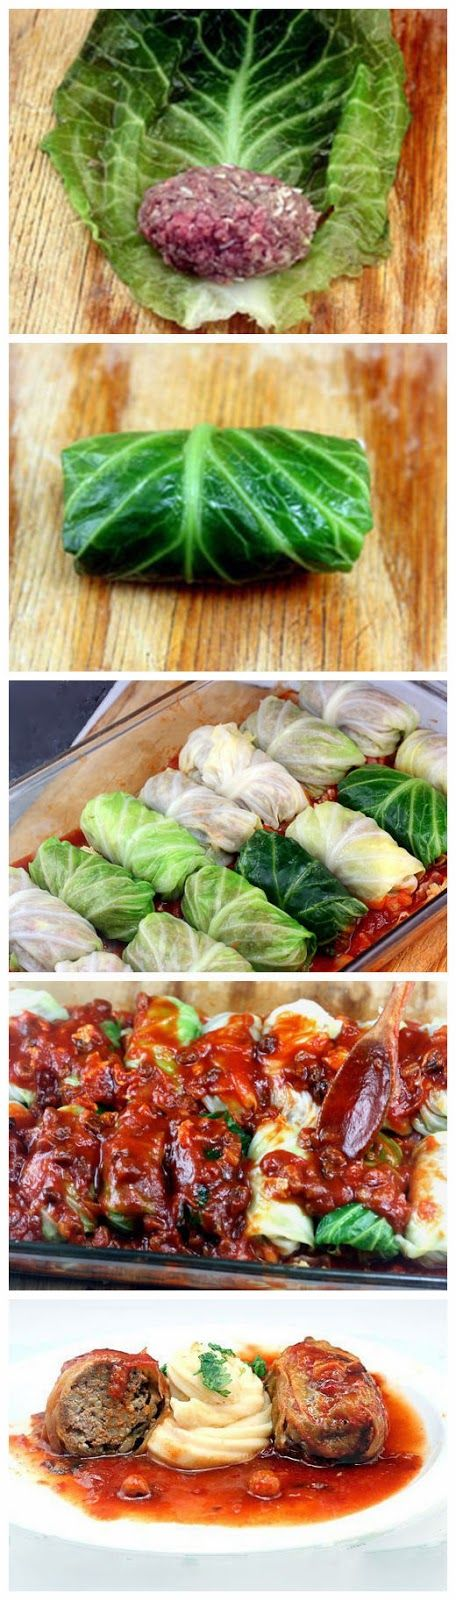 Amazing Stuffed Cabbage Rolls. Tender leaves of cabbage stuffed and rolled with beef, garlic, onion and rice, simmered in a rich tomato sauc...